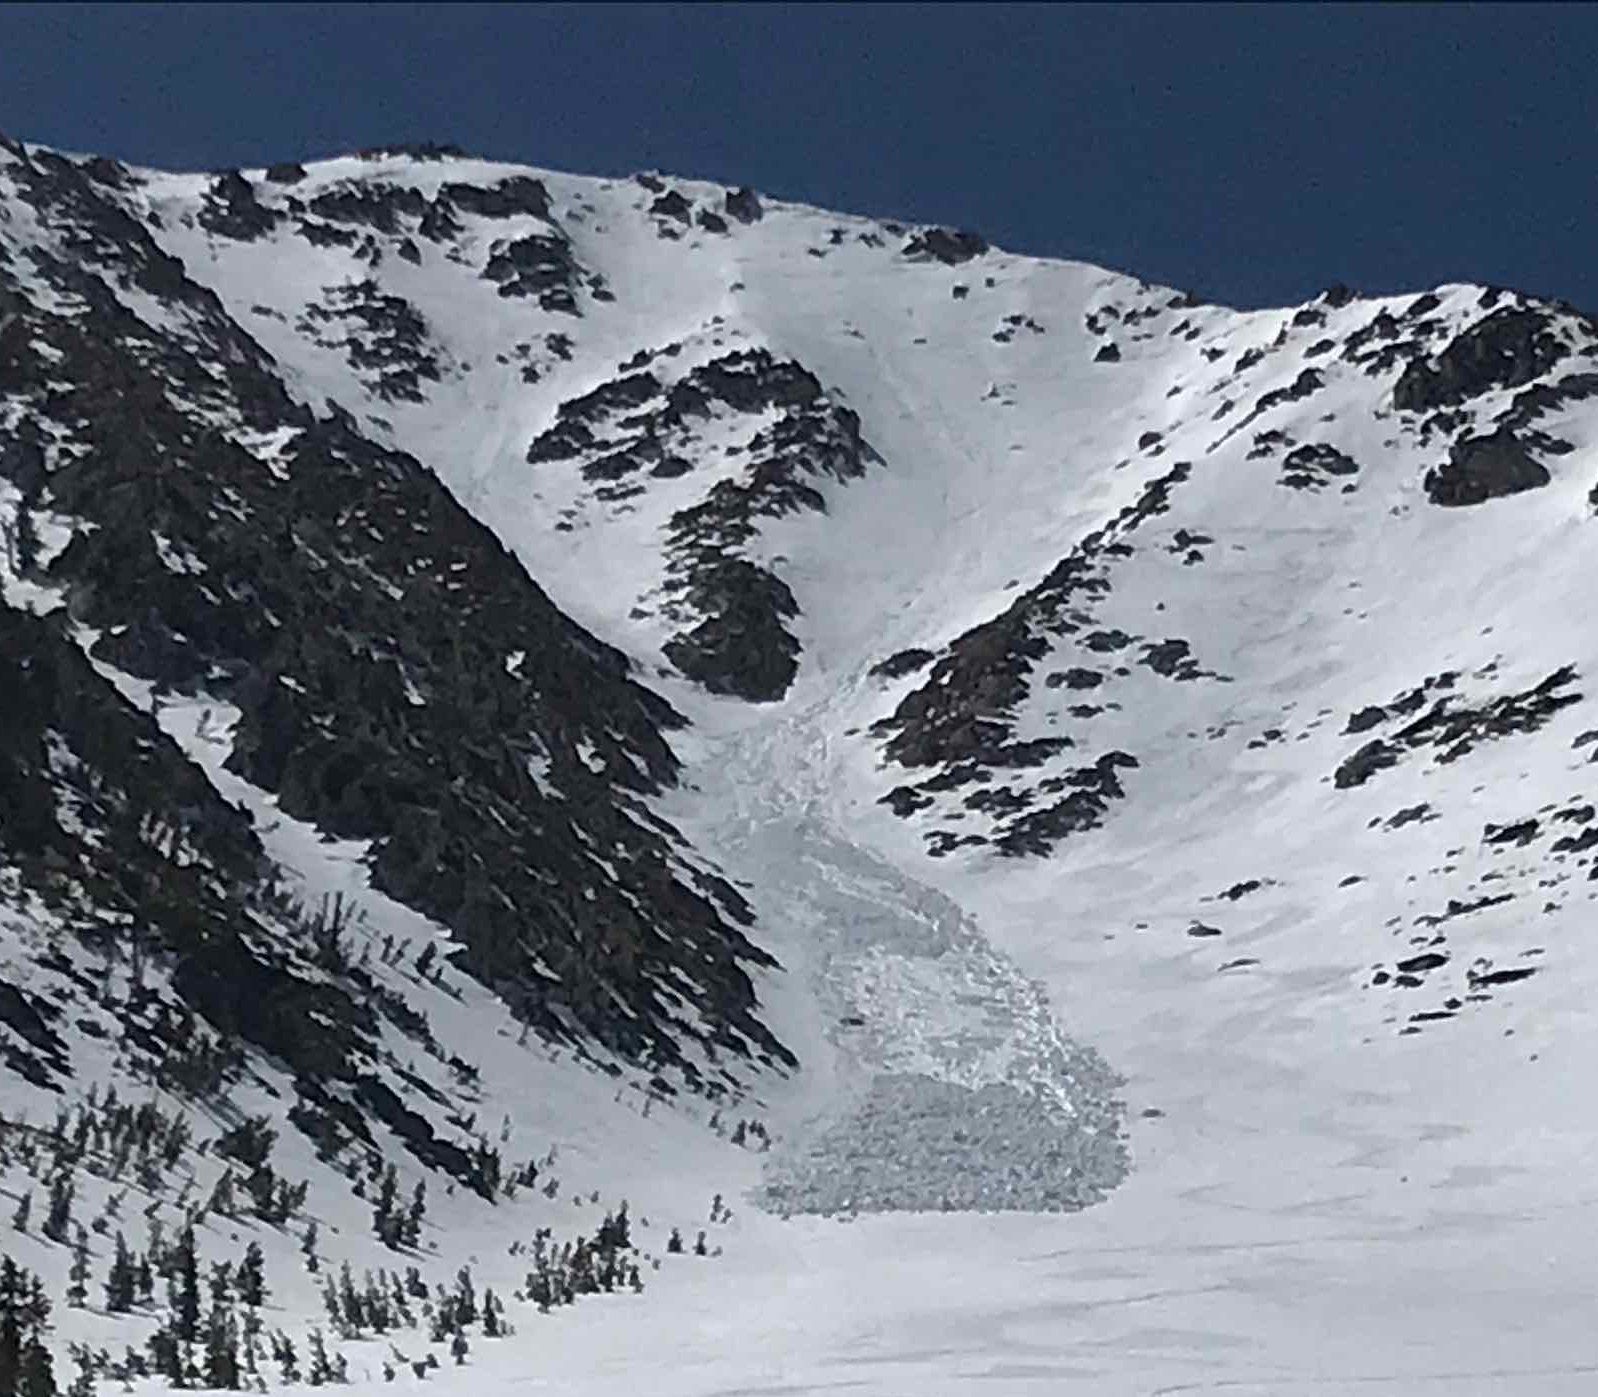 Loose wet avalanche on Jobs Peak from 4/25 or 4/26